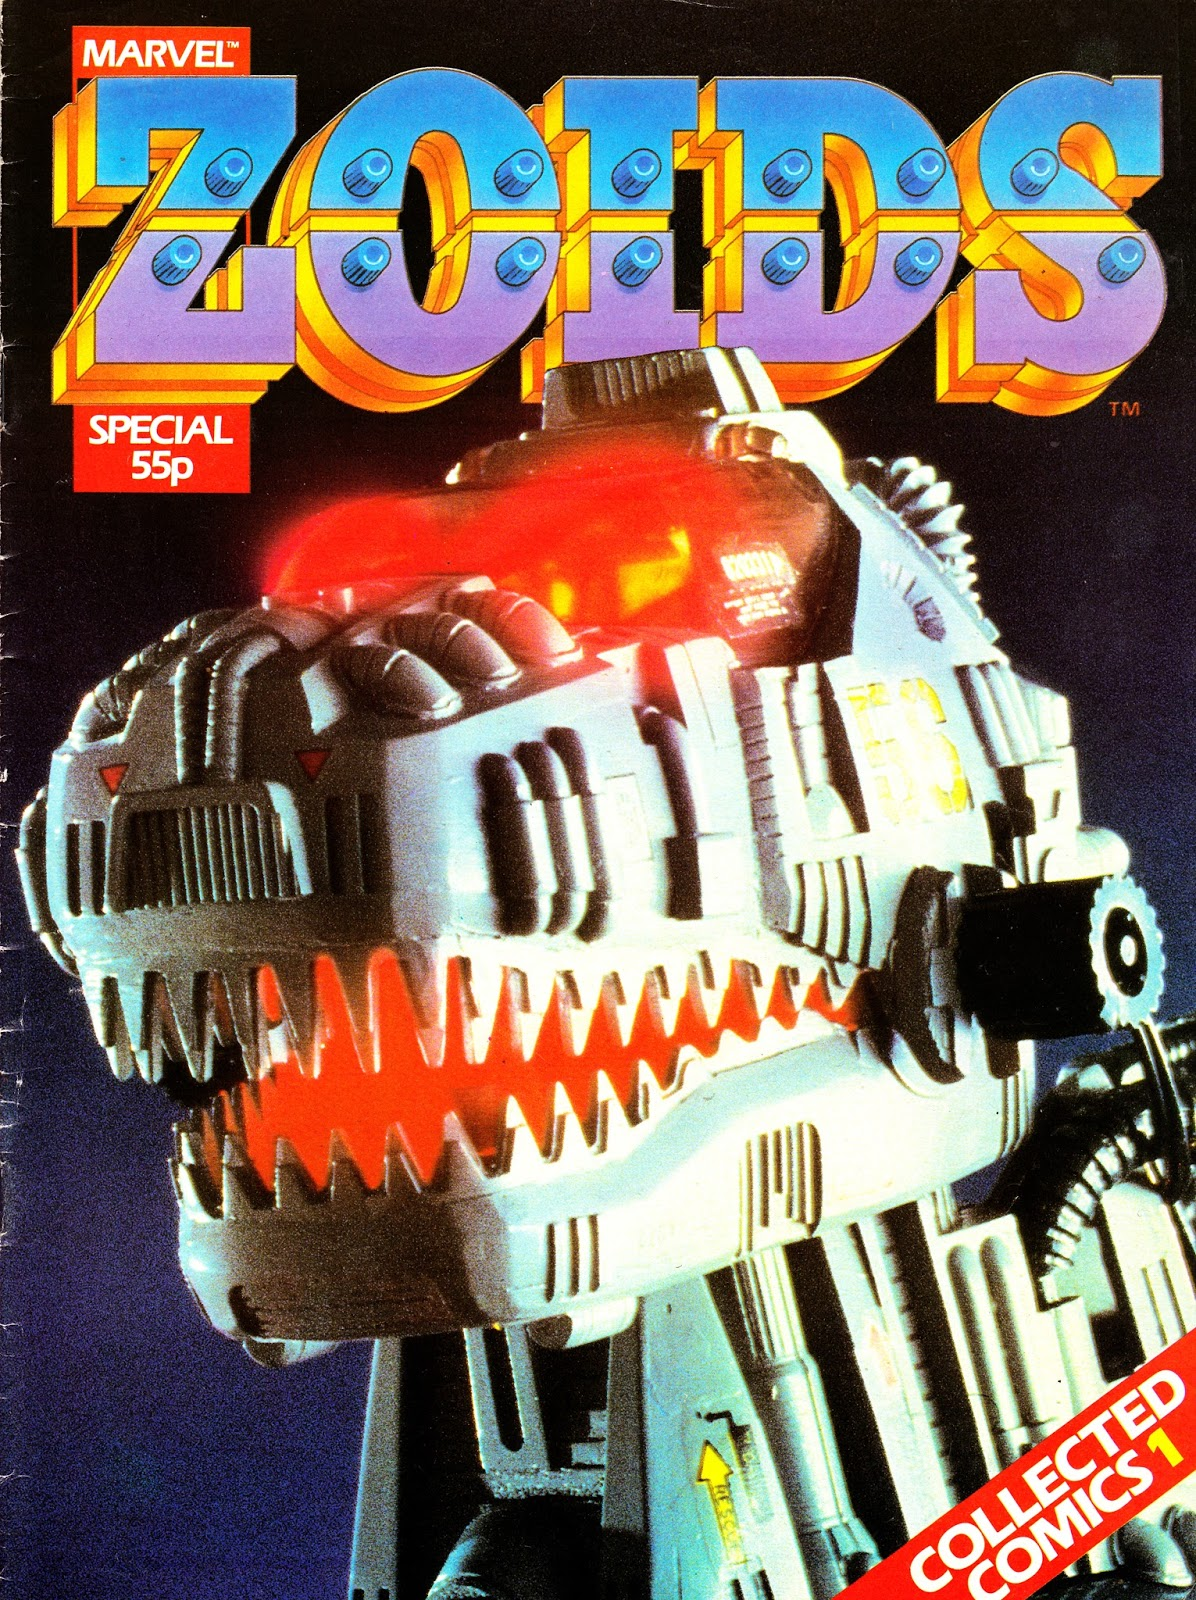 There may be a live action Zoids movie in development  Live for Films